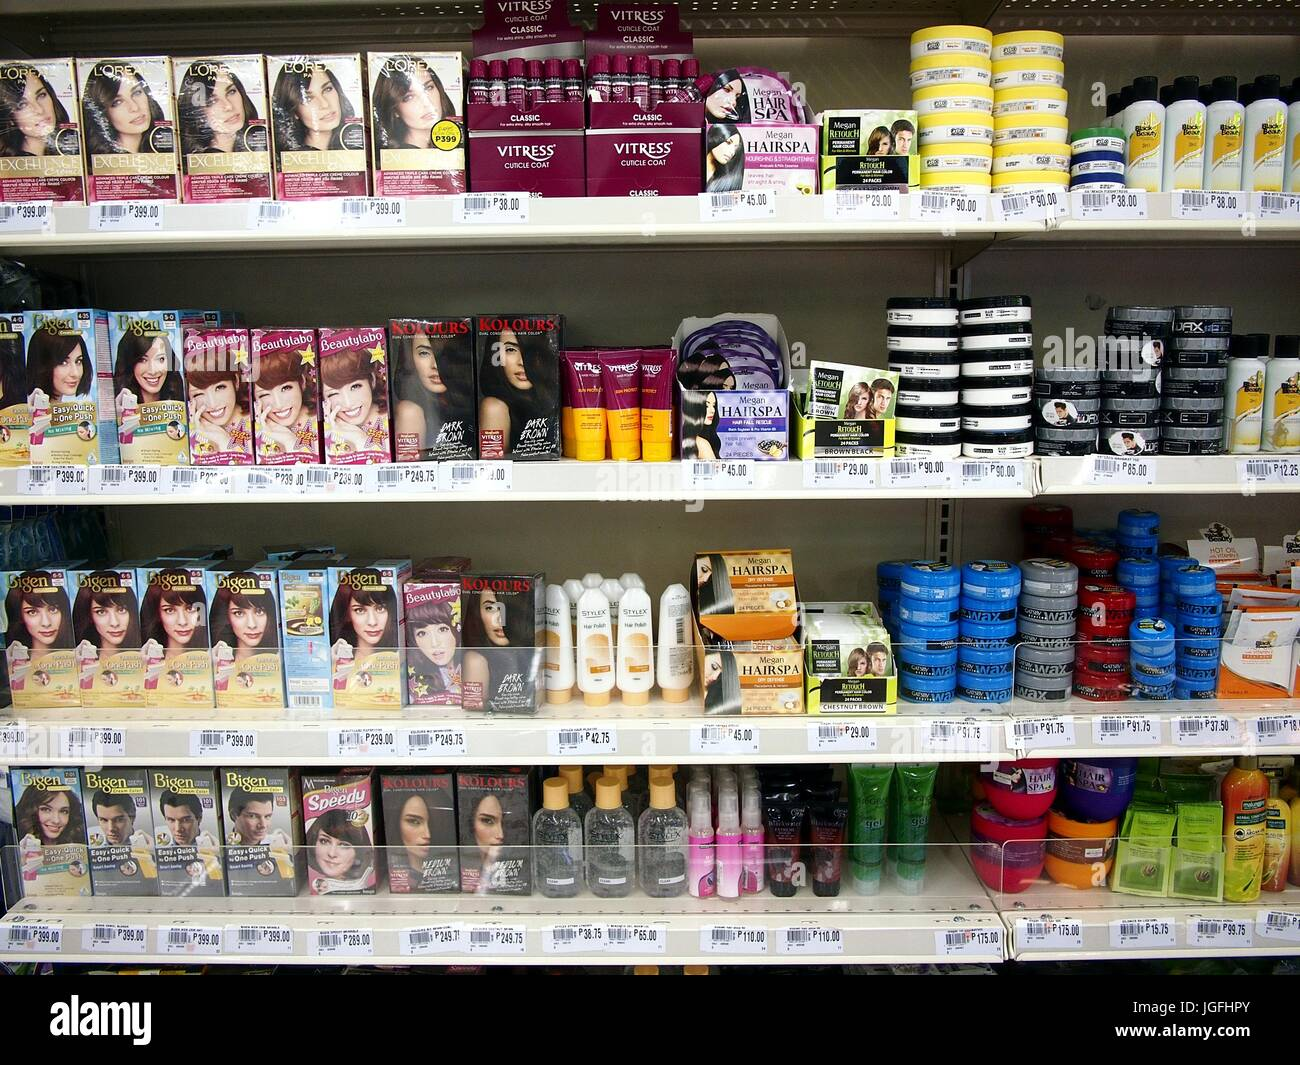 ANTIPOLO CITY, PHILIPPINES - JULY 5, 2017: Hair care products on display at a grocery store ready to be picked up - Stock Image